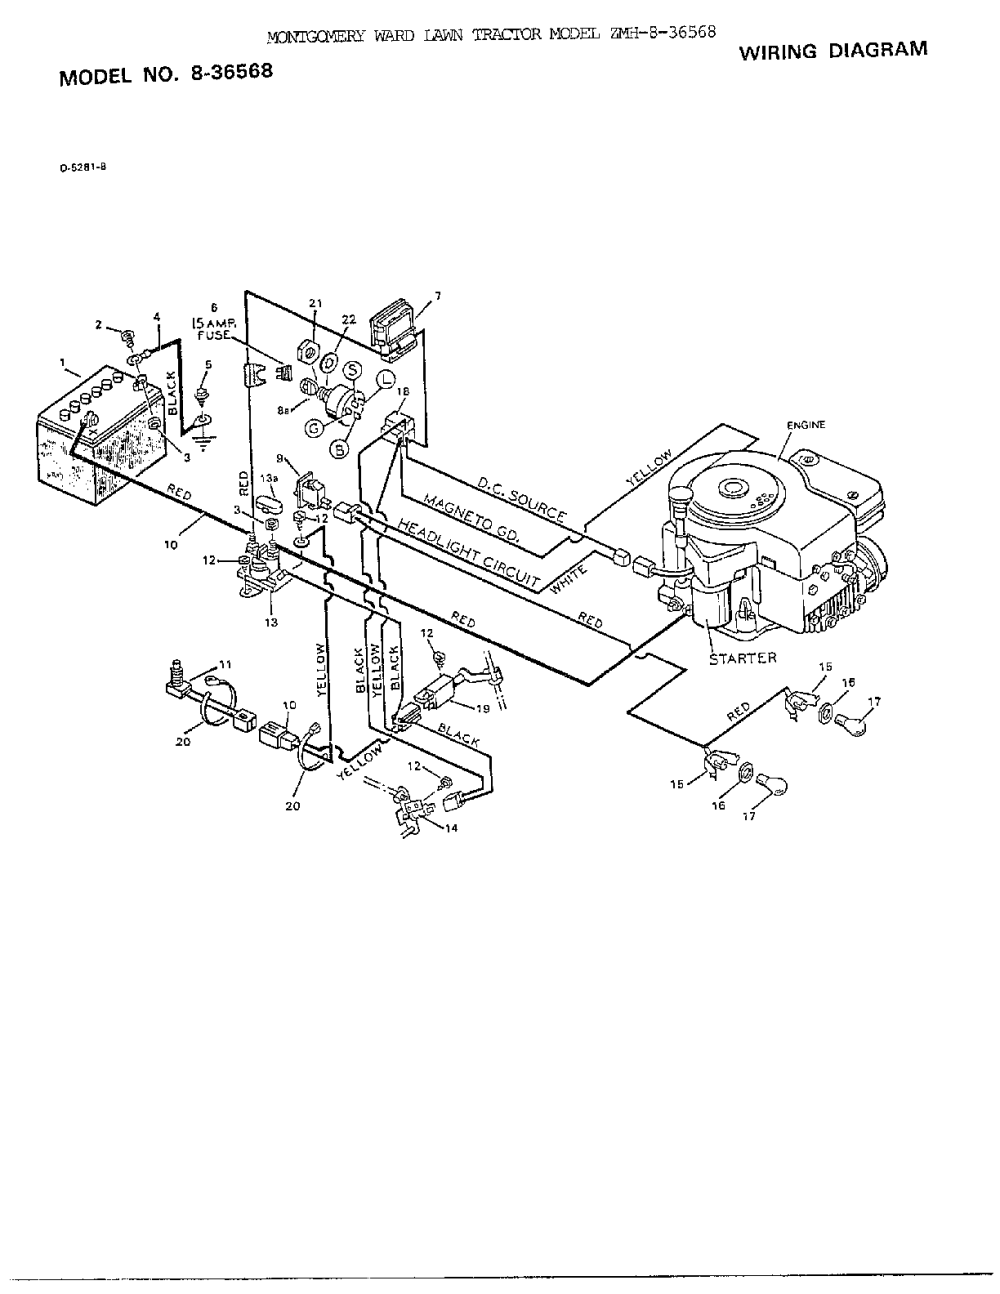 medium resolution of looking for murray model 8 36568 front engine lawn tractor repair murray lawn mower engine diagram